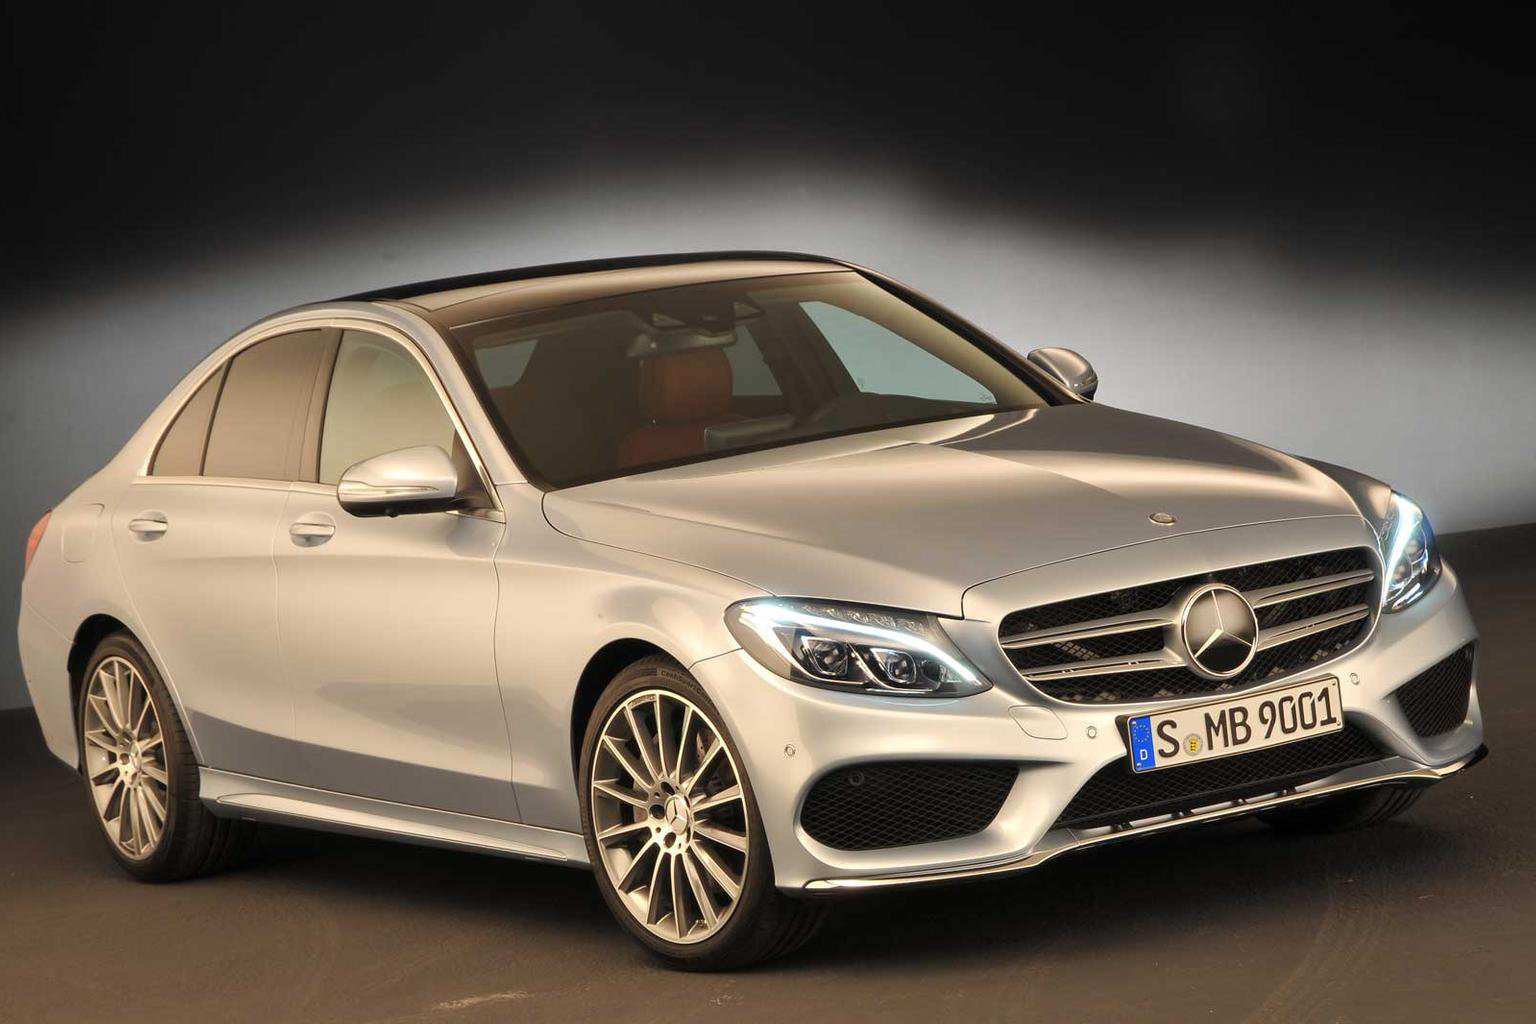 2014 Mercedes C-Class revealed